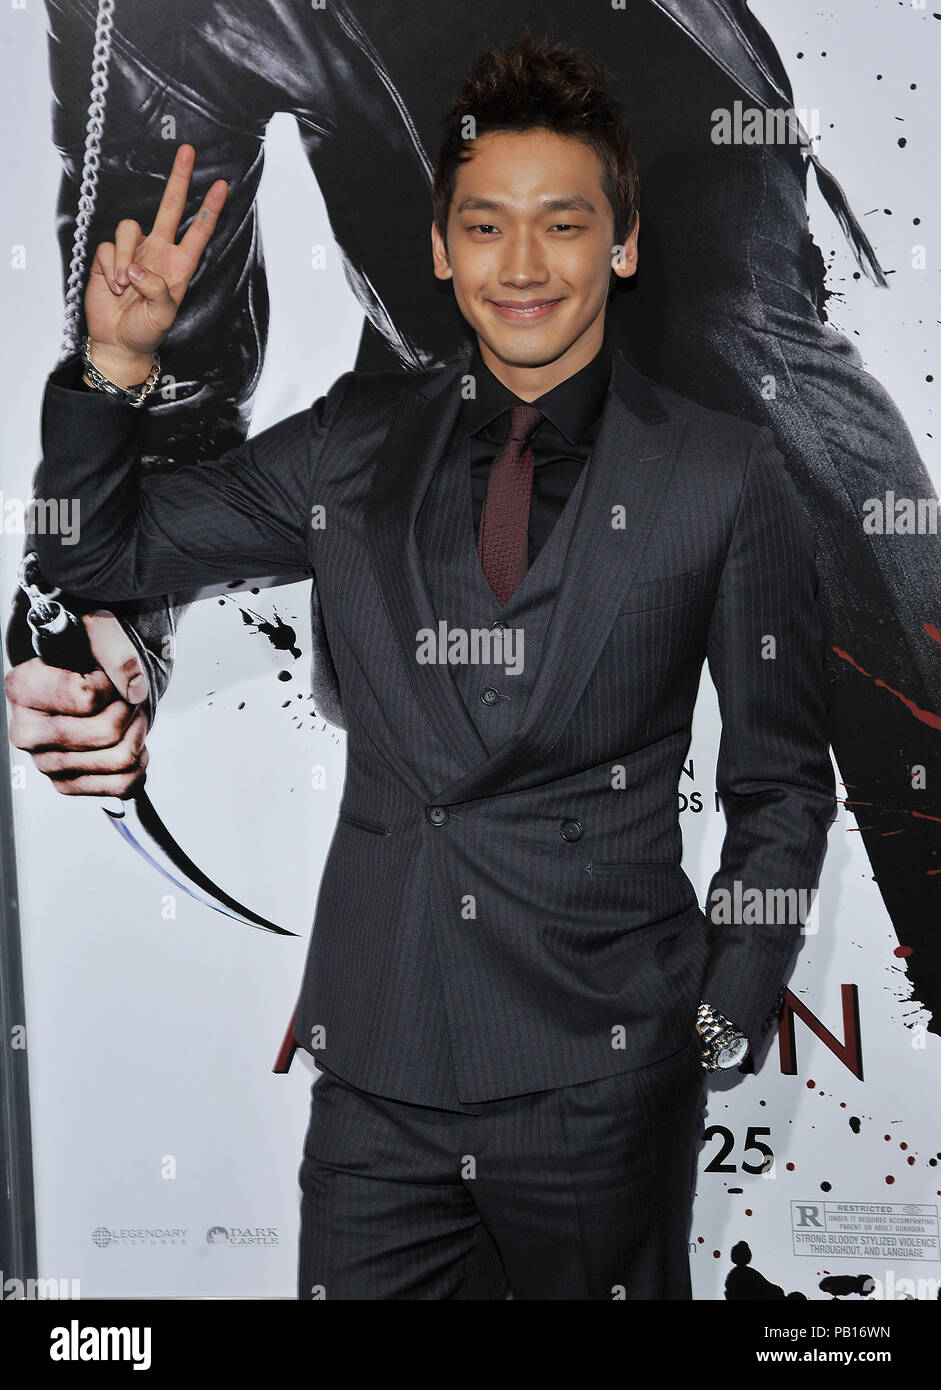 Rain Raizo   - NINJA ASSASSIN Premiere at GraumanÕs Chinese Theatre In Los Angeles.08_Rain Raizo_08 Red Carpet Event, Vertical, USA, Film Industry, Celebrities,  Photography, Bestof, Arts Culture and Entertainment, Topix Celebrities fashion /  Vertical, Best of, Event in Hollywood Life - California,  Red Carpet and backstage, USA, Film Industry, Celebrities,  movie celebrities, TV celebrities, Music celebrities, Photography, Bestof, Arts Culture and Entertainment,  Topix, vertical, one person,, from the years , 2006 to 2009, inquiry tsuni@Gamma-USA.com - Three Quarters - Stock Image